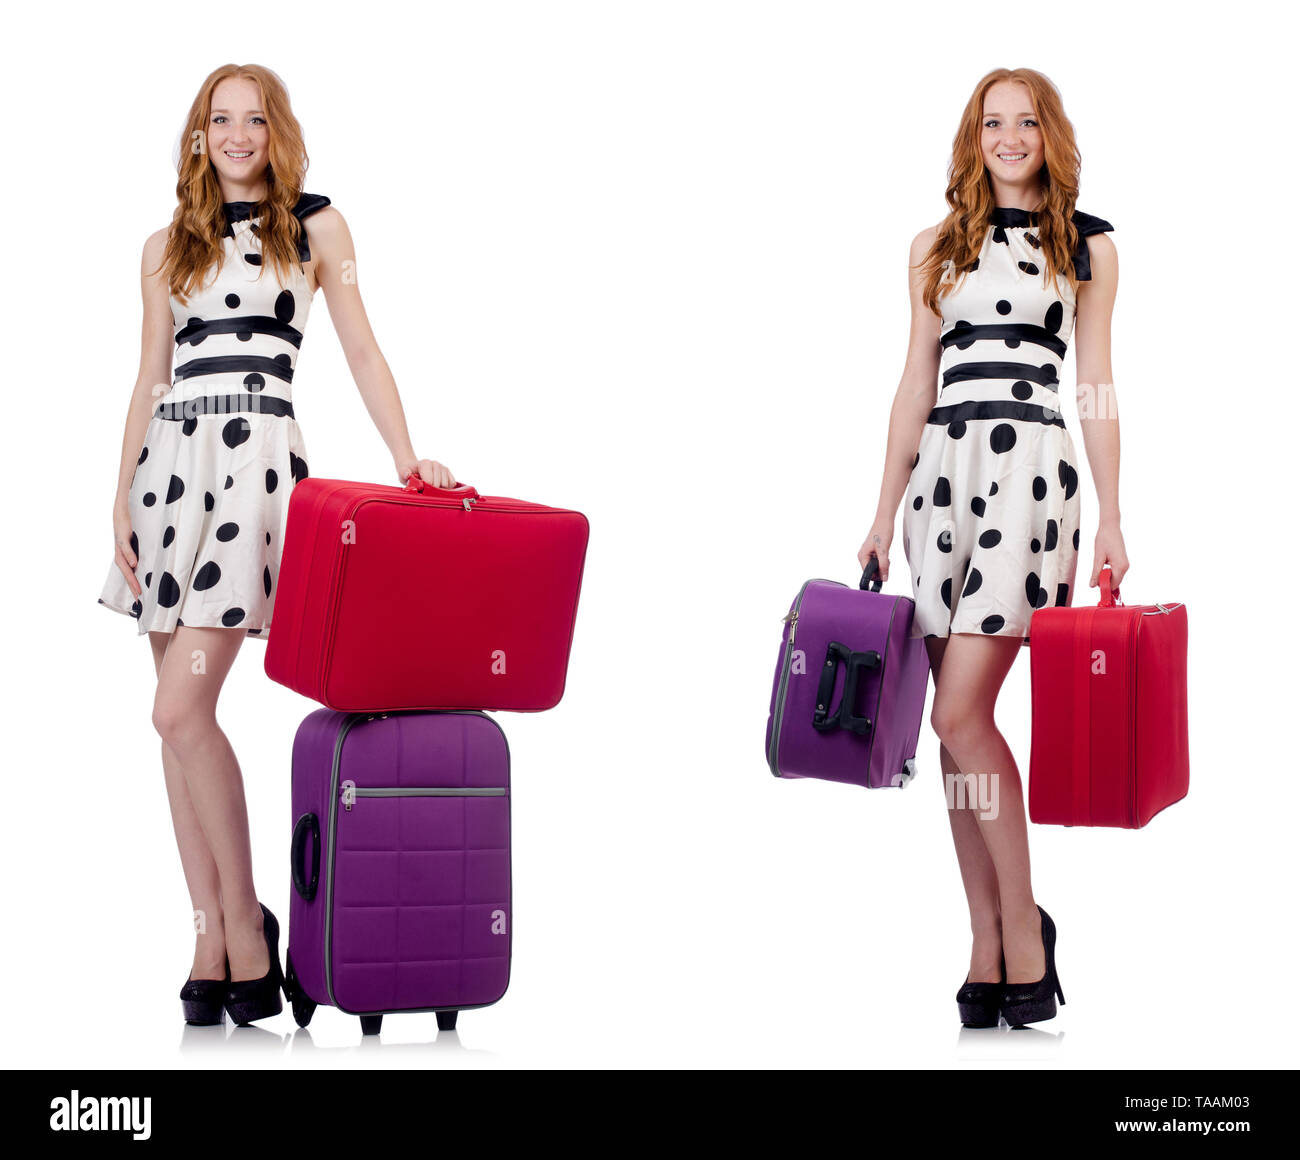 Beautiful woman in polka dot dress with suitcases isolated on white - Stock Image